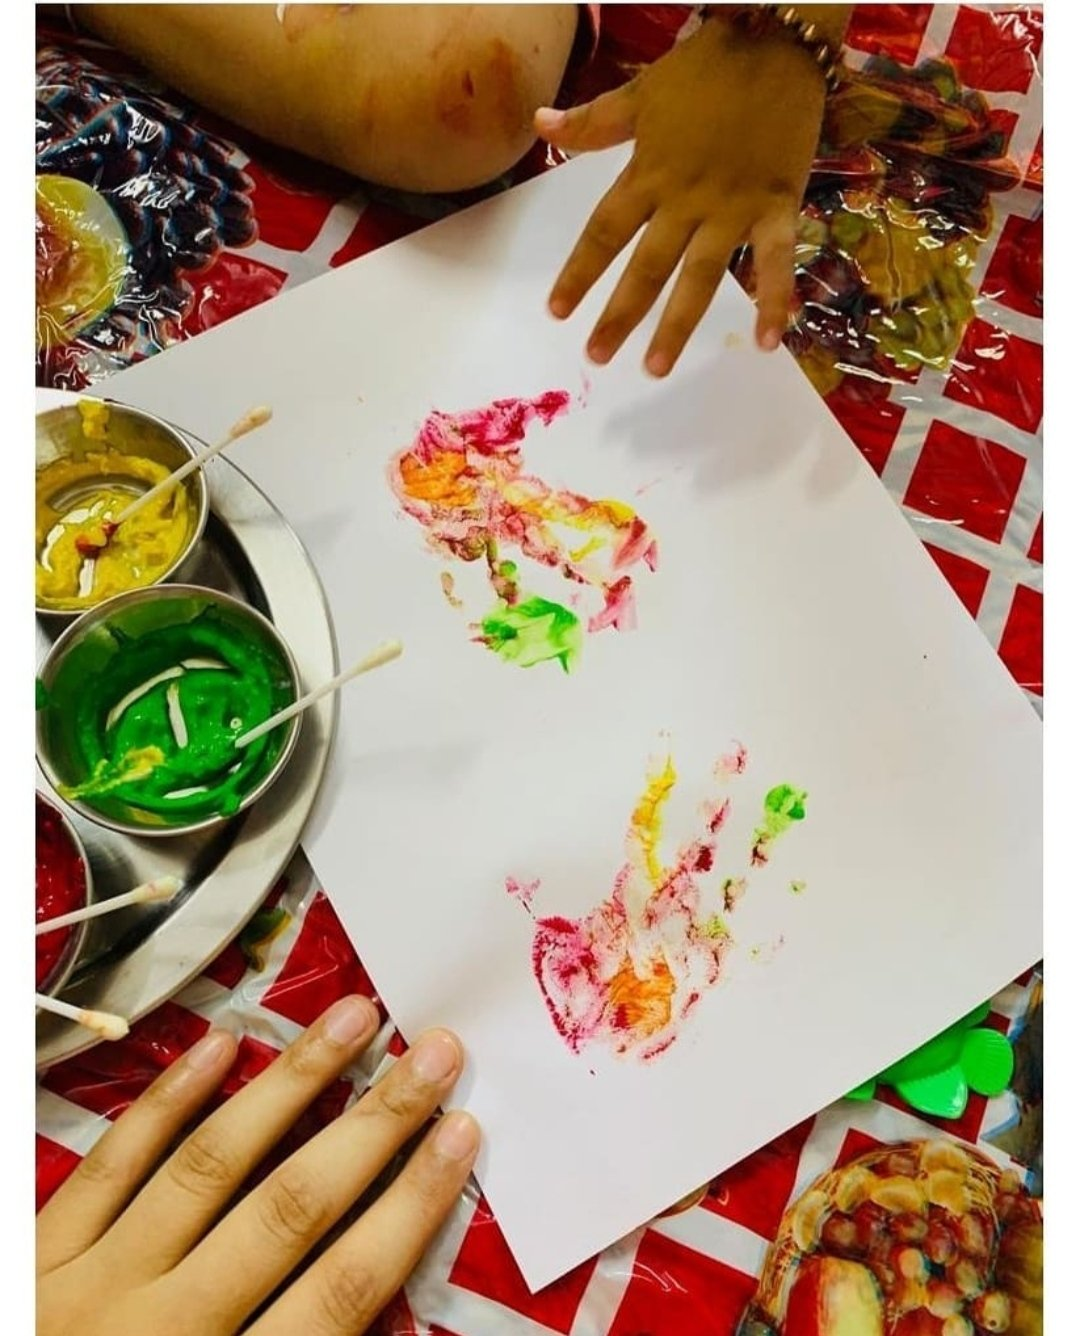 Hand prints using edible finger paints